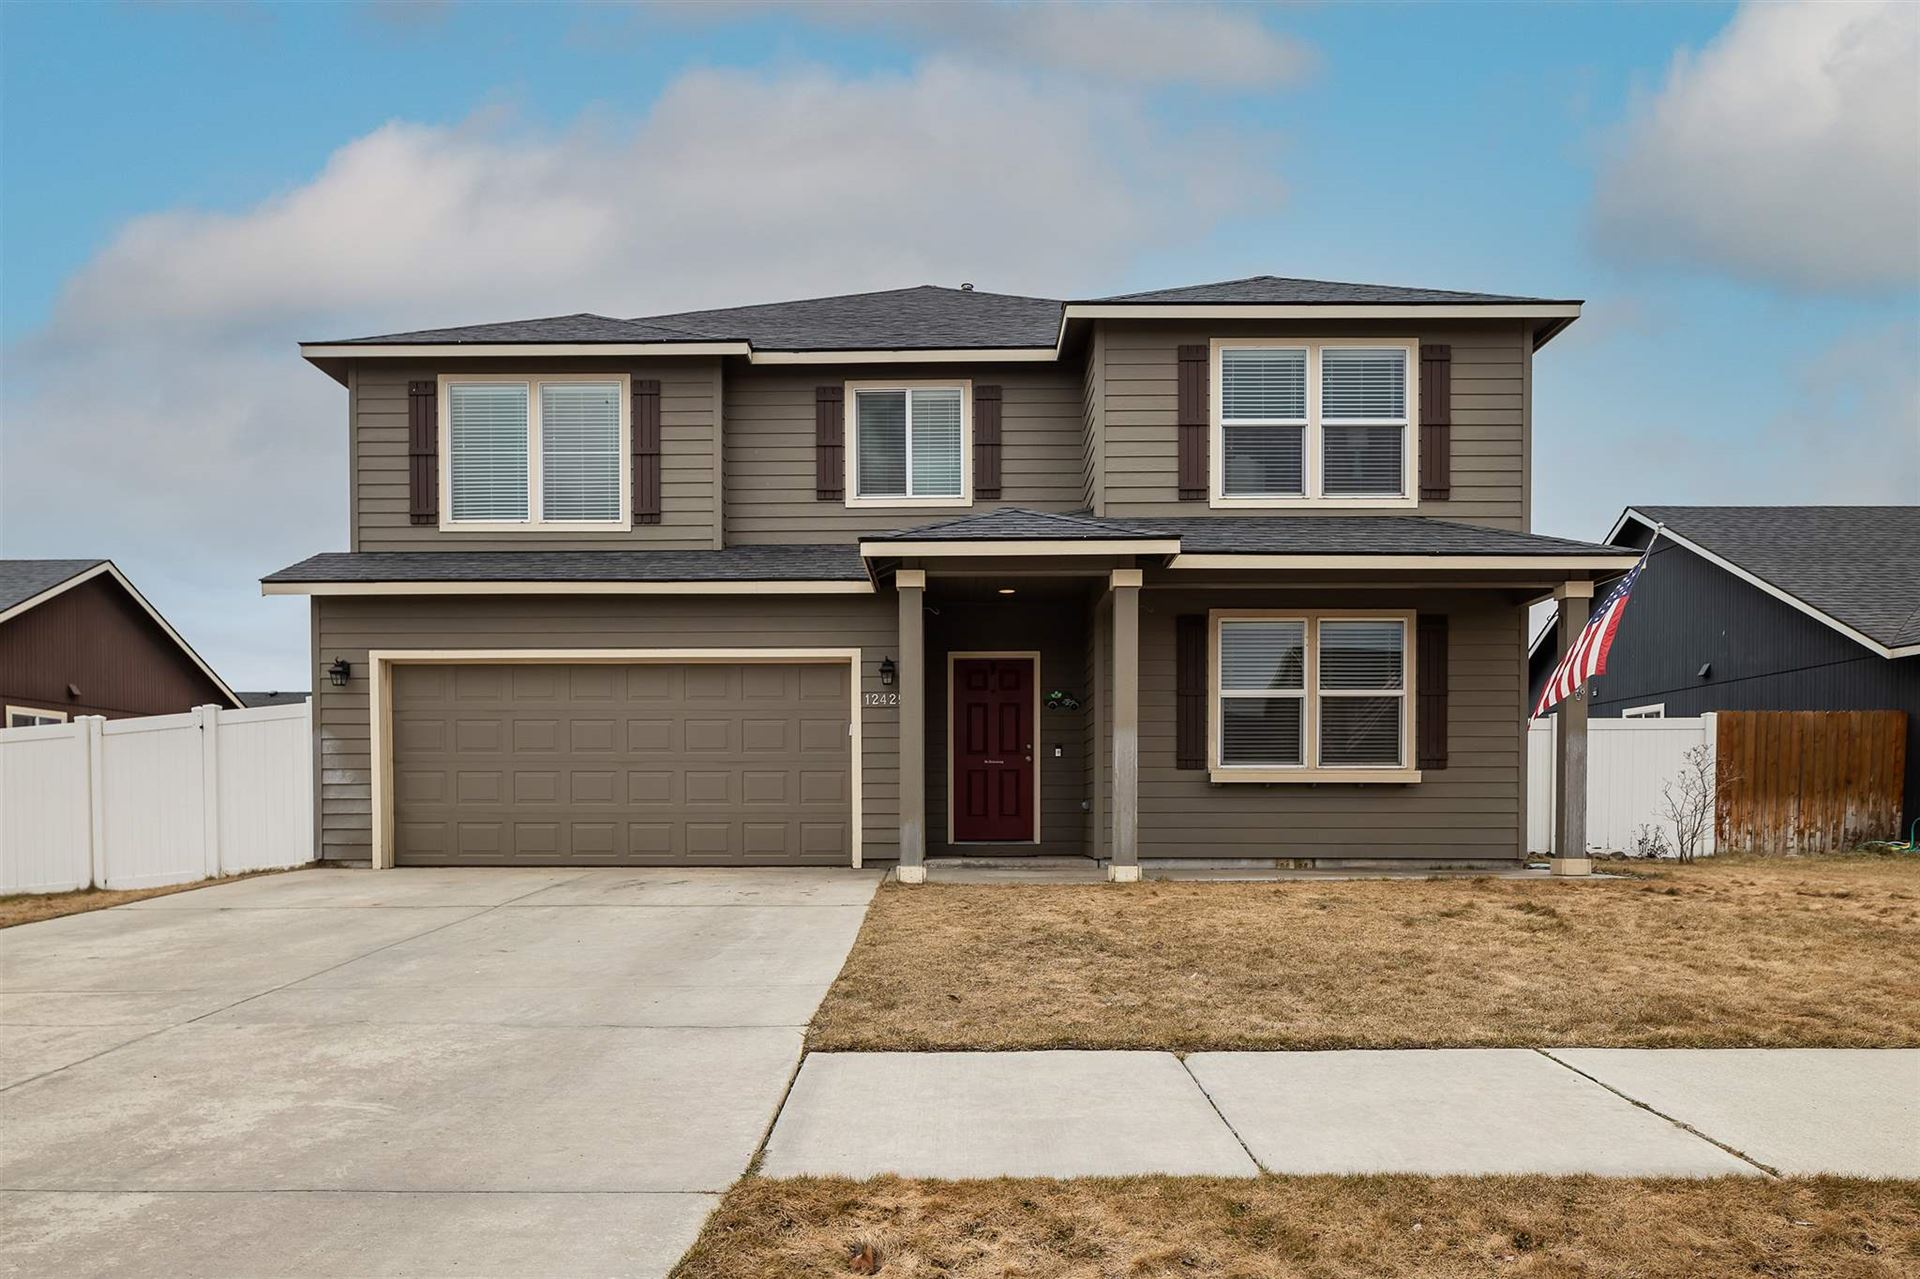 12425 W Pacific Ct, Airway Heights, WA 99001 - #: 202112677